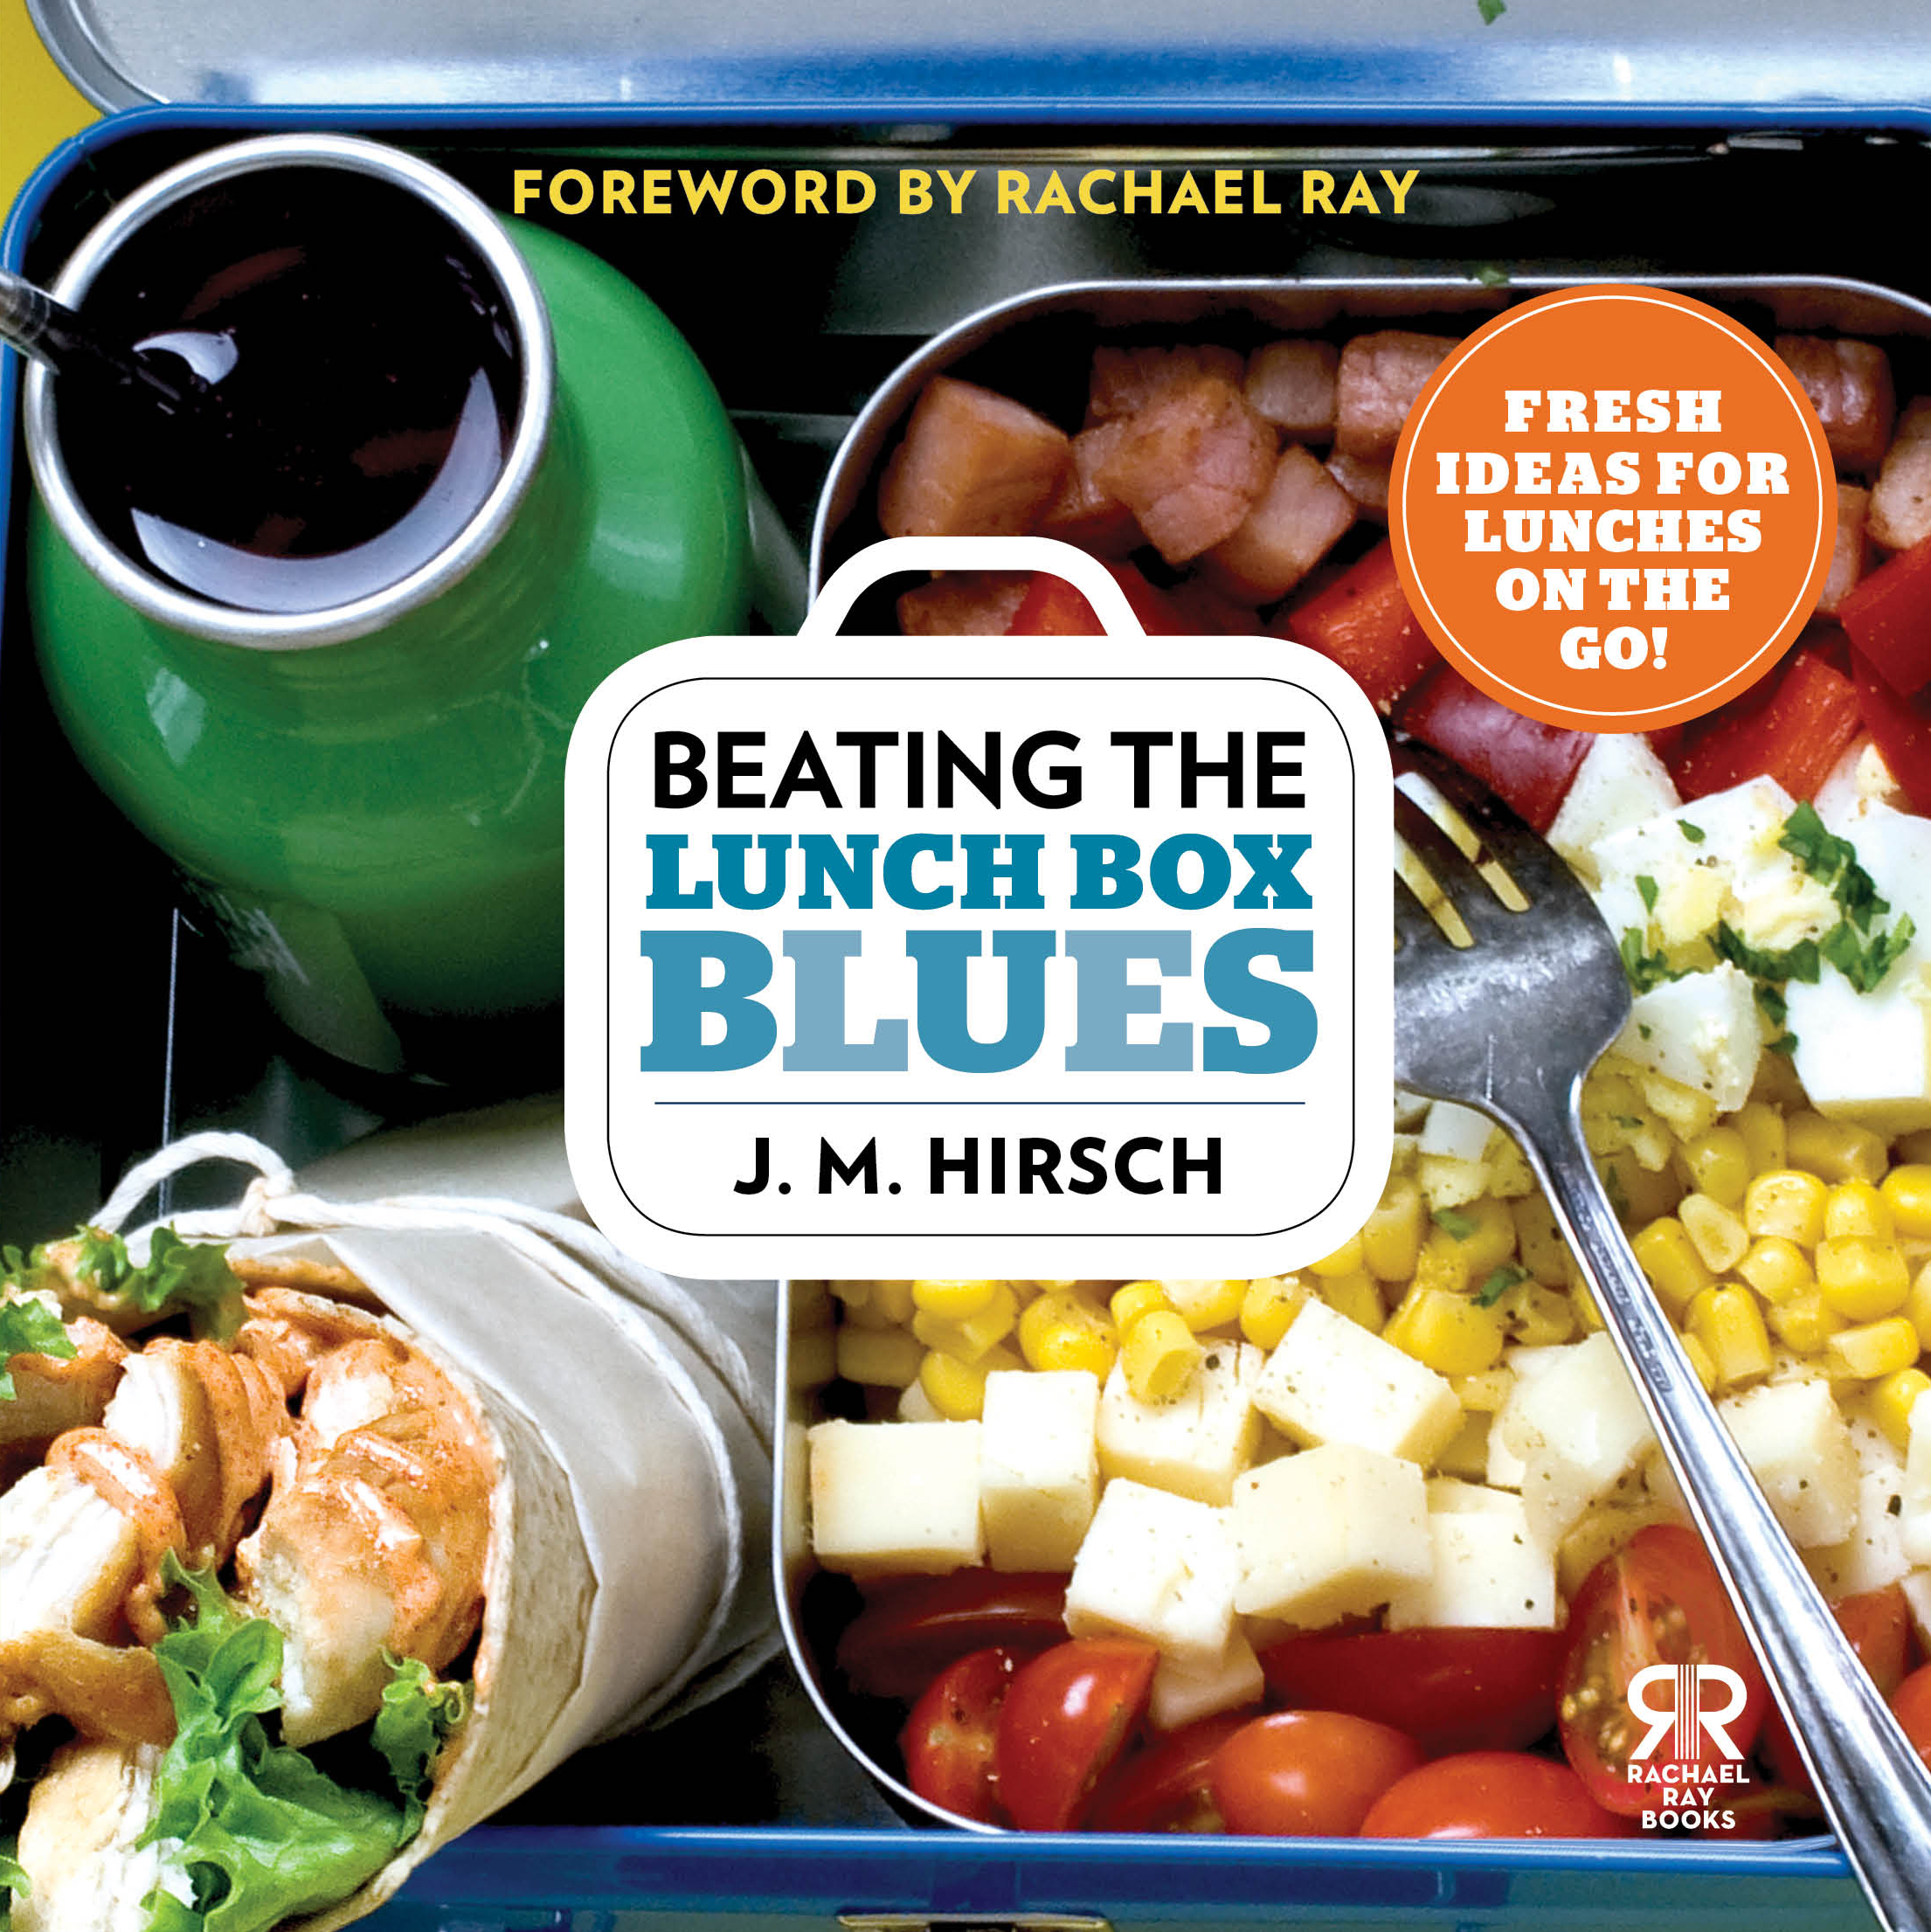 Beating the lunch box blues book by j m hirsch rachael ray cvr9781476726724 9781476726724 hr forumfinder Image collections